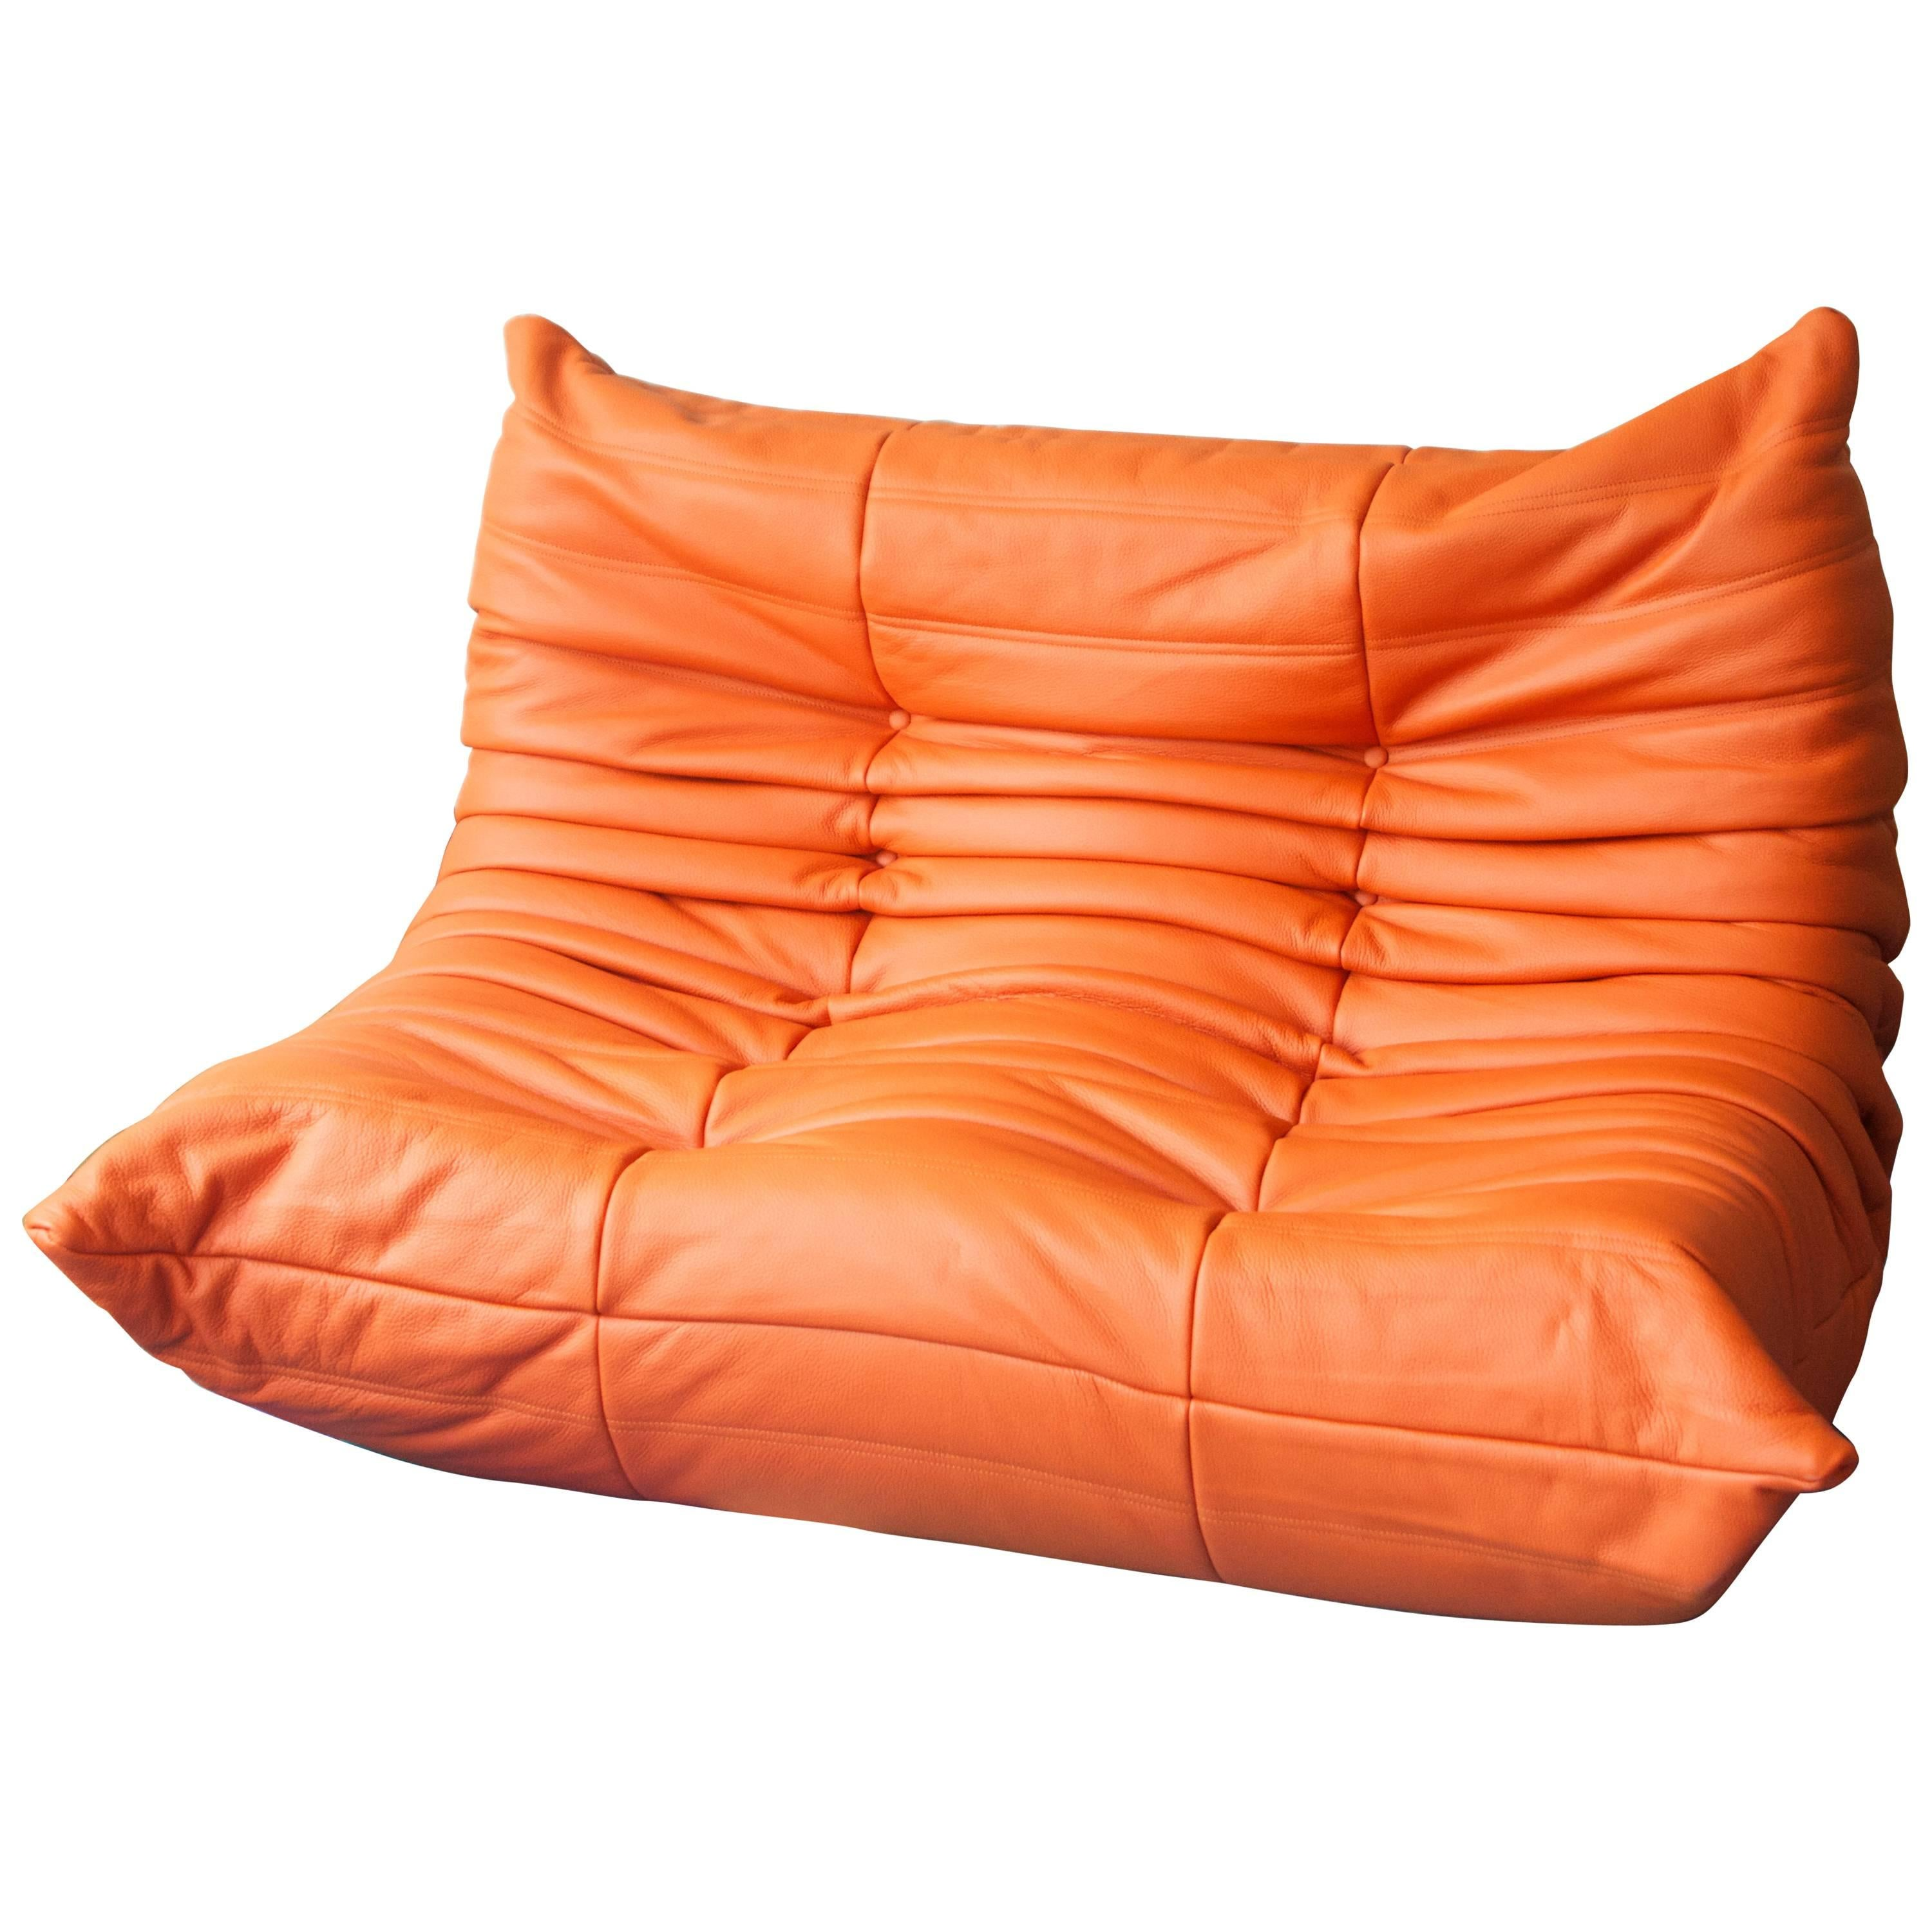 Orange Leather Two Seat Togo Sofa By Michel Ducaroy For Ligne Roset For Sale